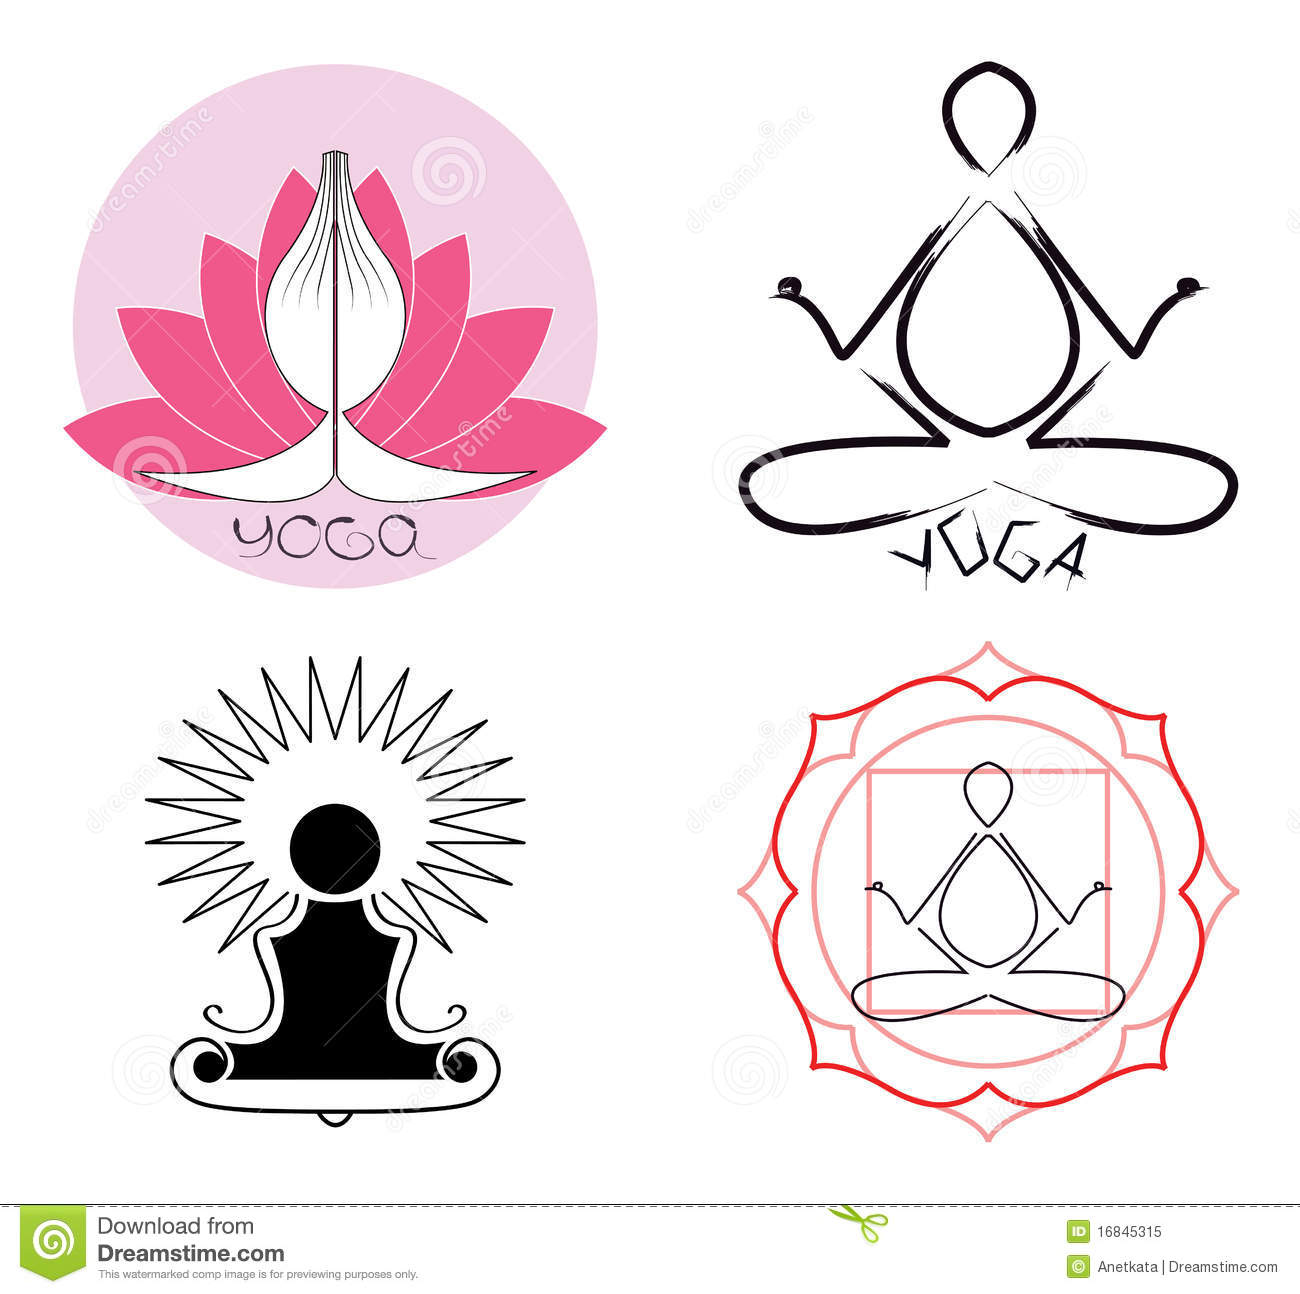 Yoga Logo Ideas Royalty Free Stock Photo - Image: 16845315